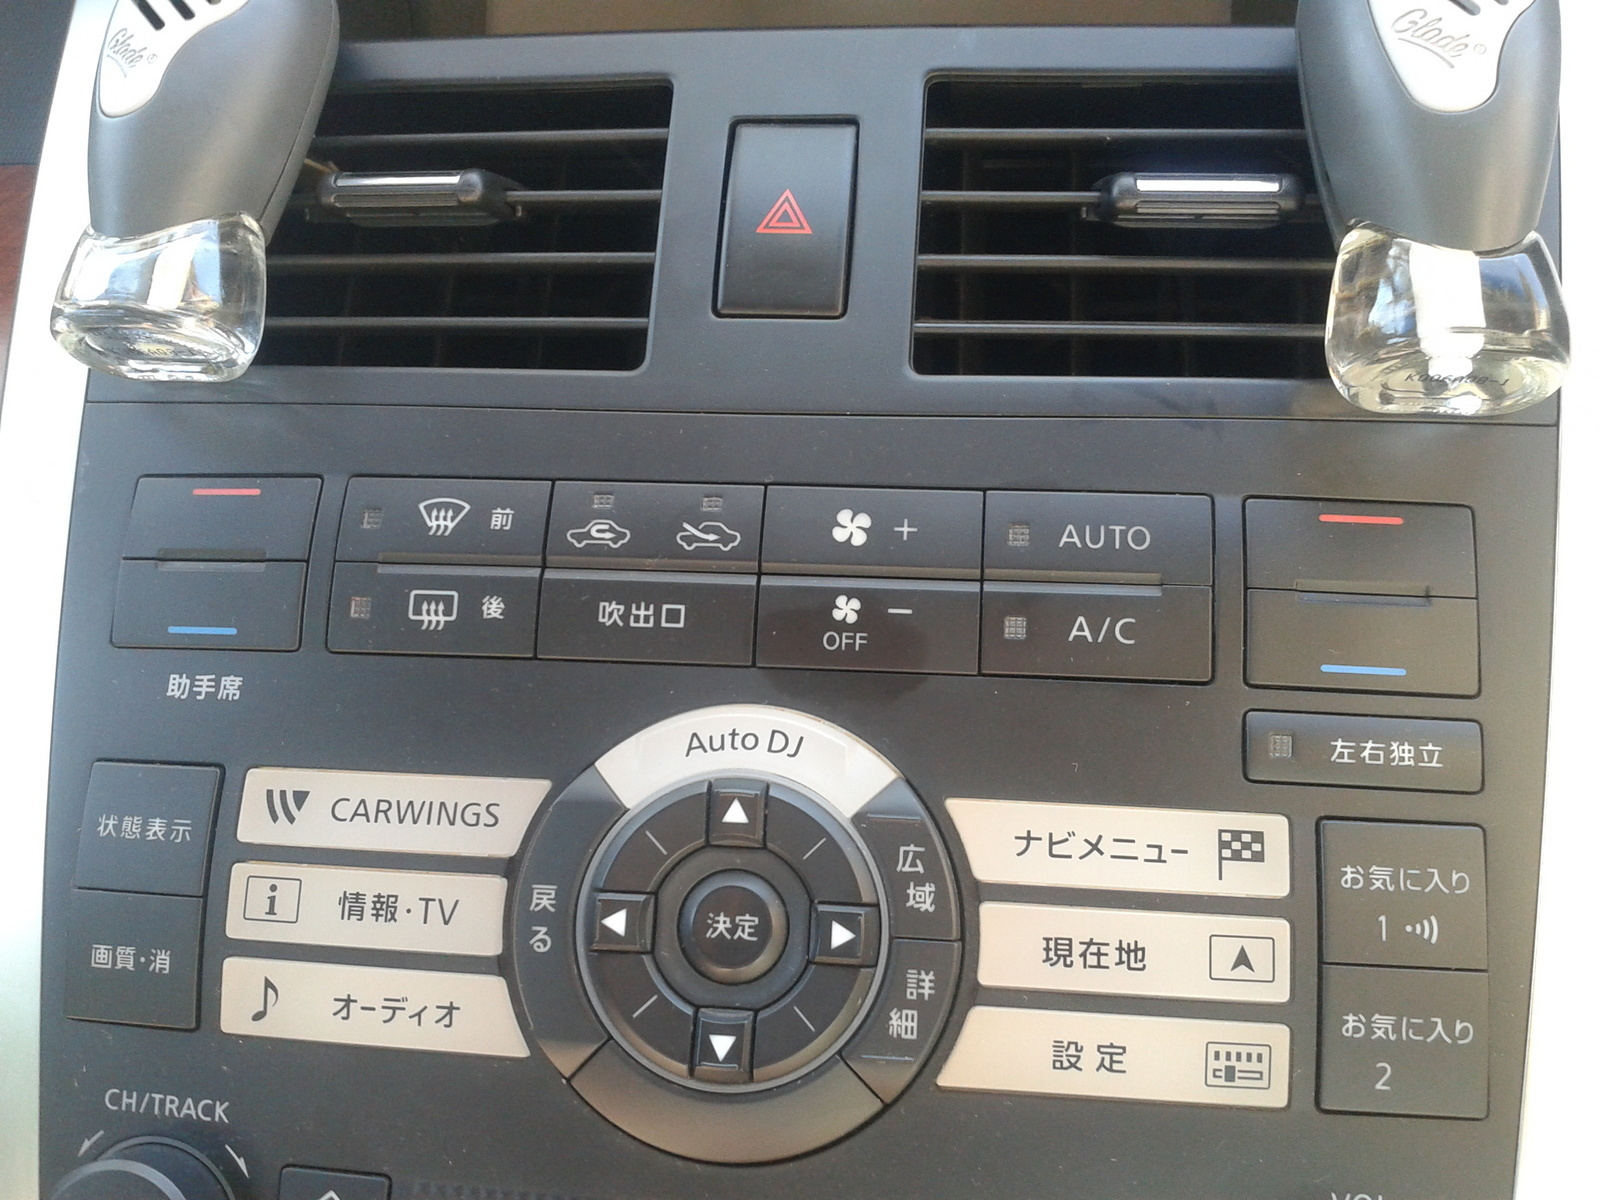 hight resolution of i bought a nissan teana 230jk 2004 model but i can t understand the symbols on stereo please help me with an english manual for stereo operation